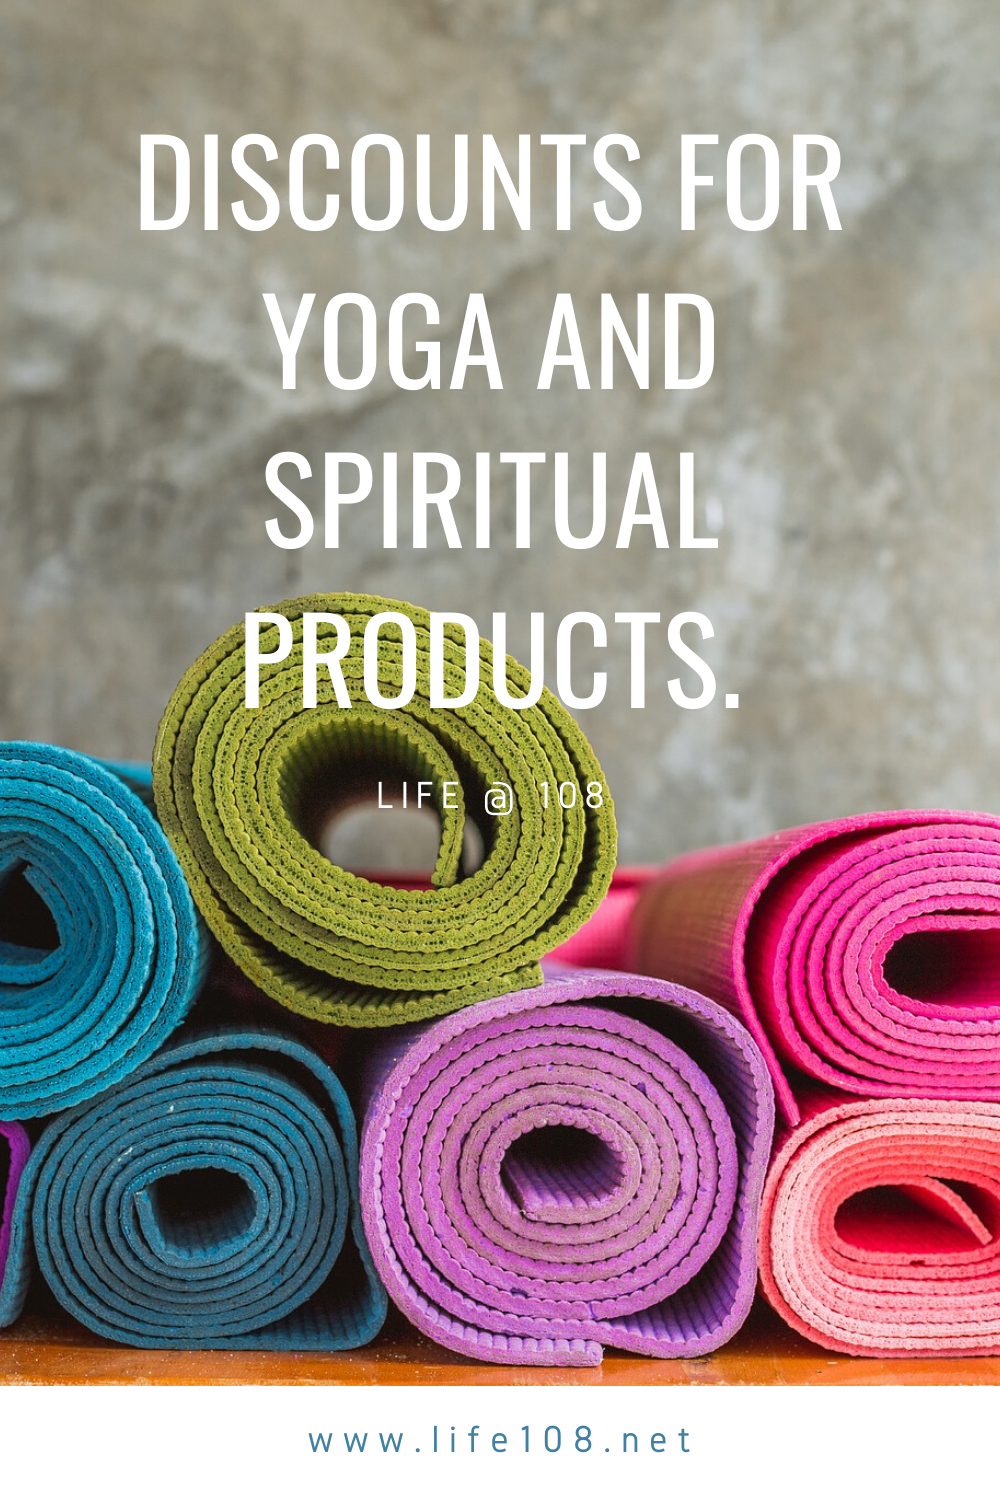 Discounts on Yoga and Spiritual products.